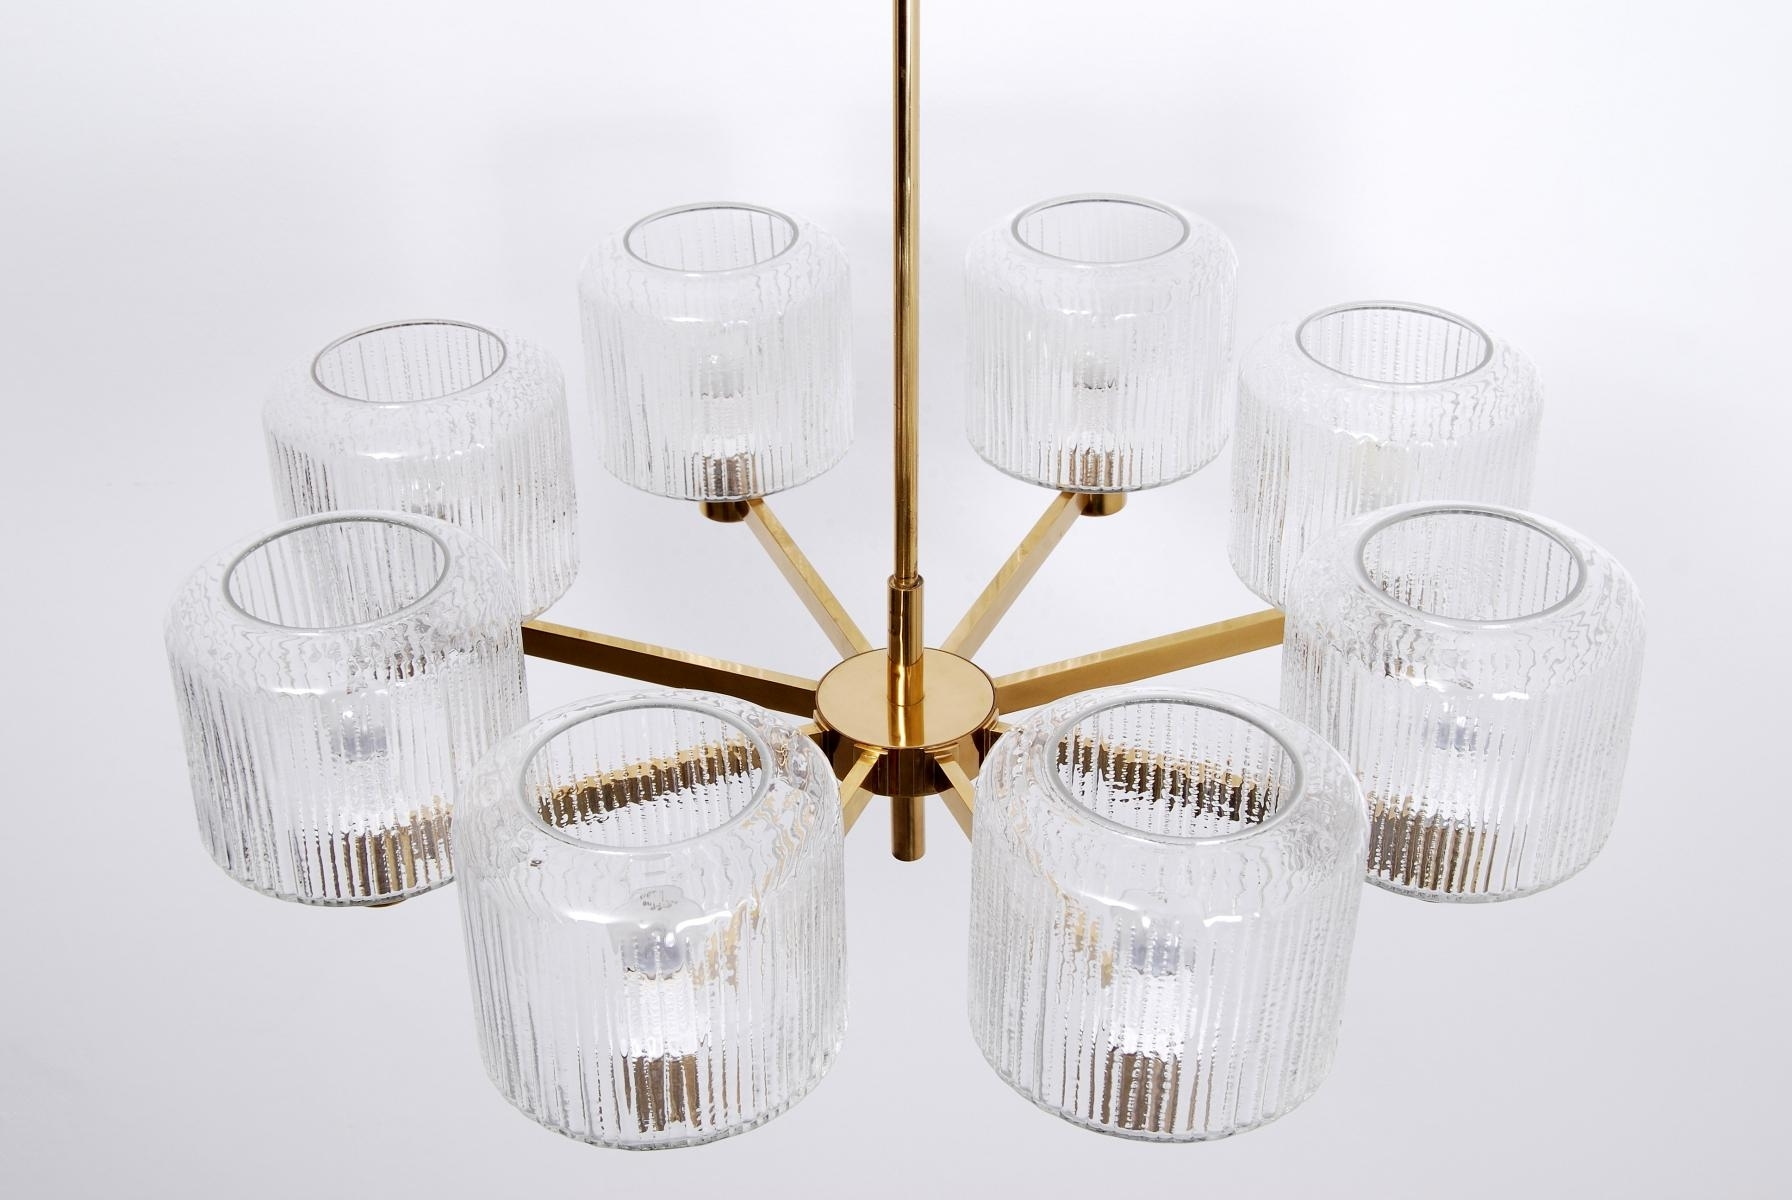 Popular Vintage Large Scandinavian Chandelier In Brass For Sale At Pamono In Scandinavian Chandeliers (View 7 of 15)